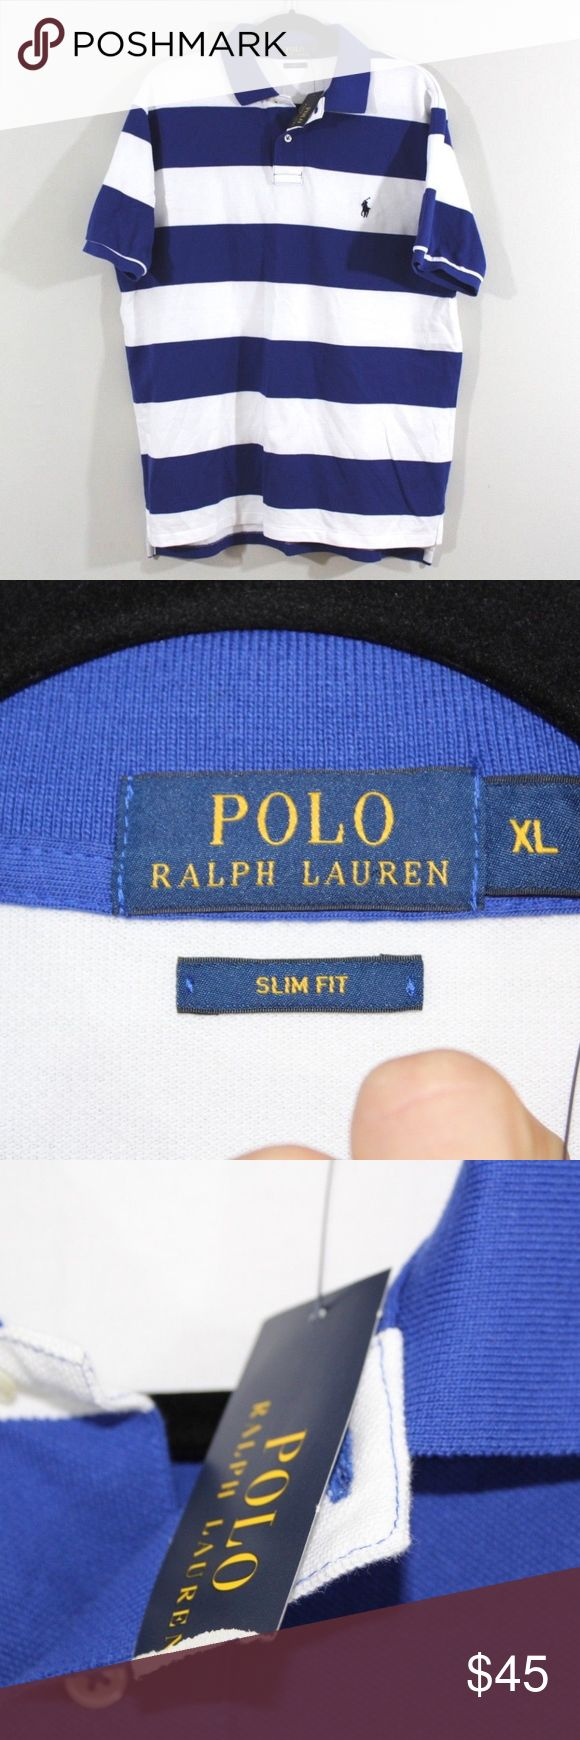 New Polo Ralph Lauren Slim Fit Golf Polo Shirt XL Polo by Ralph Lauren Slim Fit Shirt  Excellent shirt  New  Blue Striped with a Blue Pony logo  The size is XL and the measurements are 23.5 inches underarm to underarm and 28.5 inches shoulder to base  Cotton  Check out my other items for sale in my store!  MX Polo by Ralph Lauren Shirts Polos